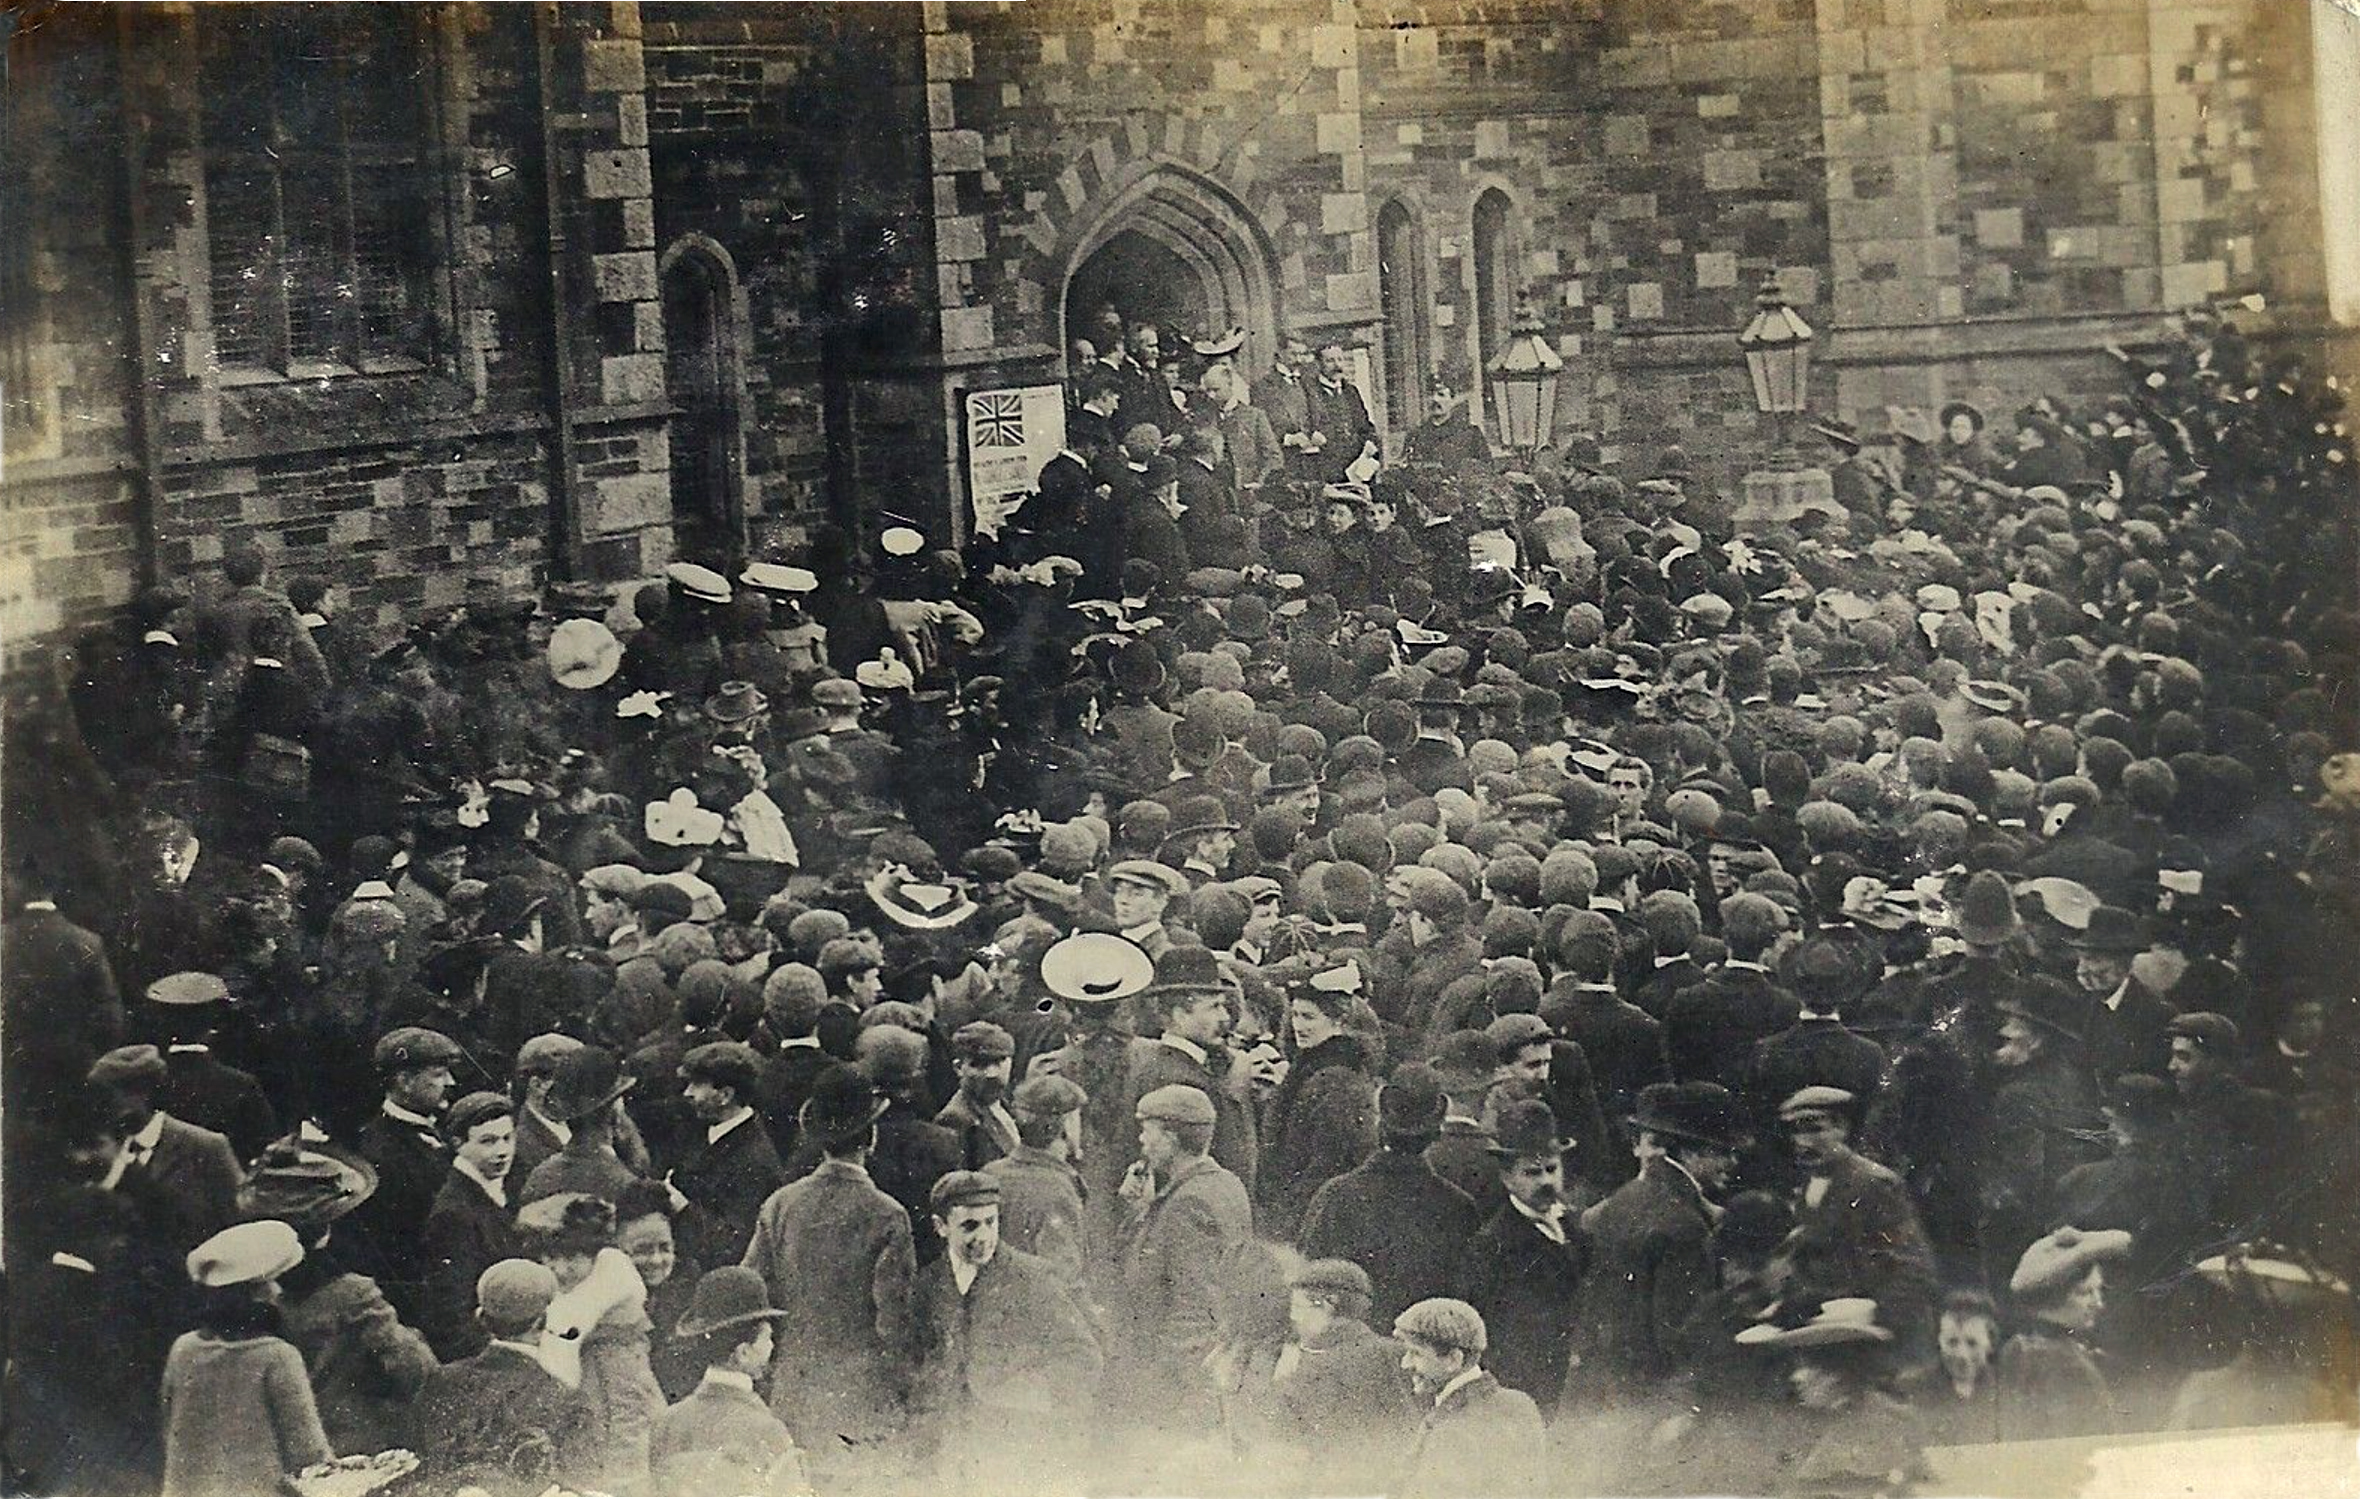 1906 gathering outside the town hall